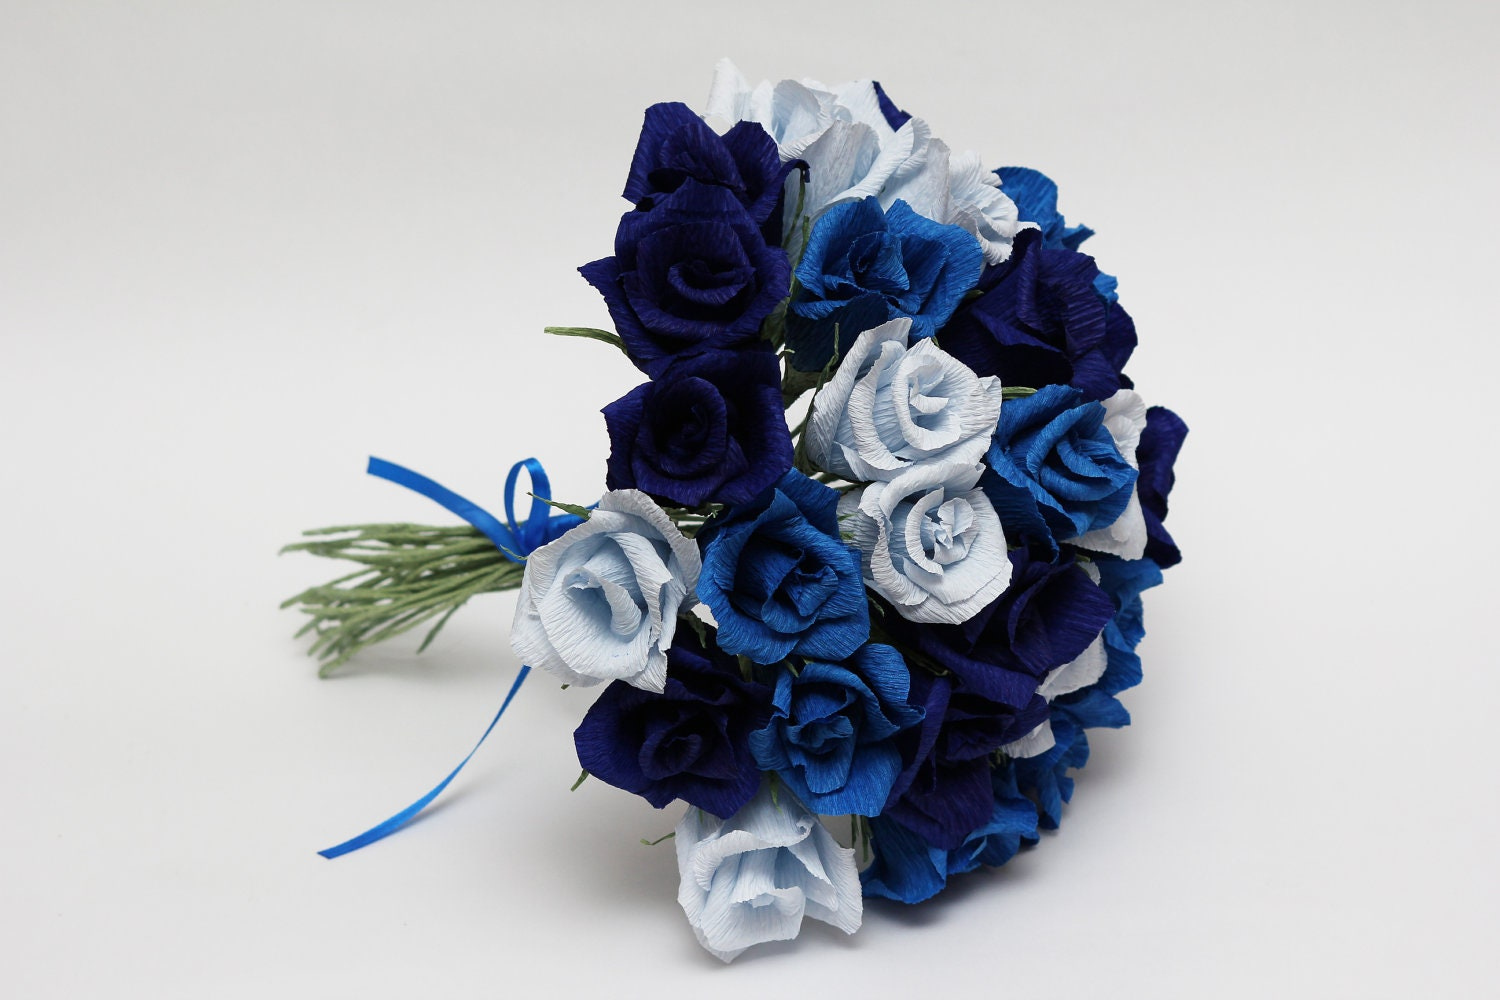 Bridesmaid bouquet paper flowers wedding flowers wedding zoom izmirmasajfo Choice Image